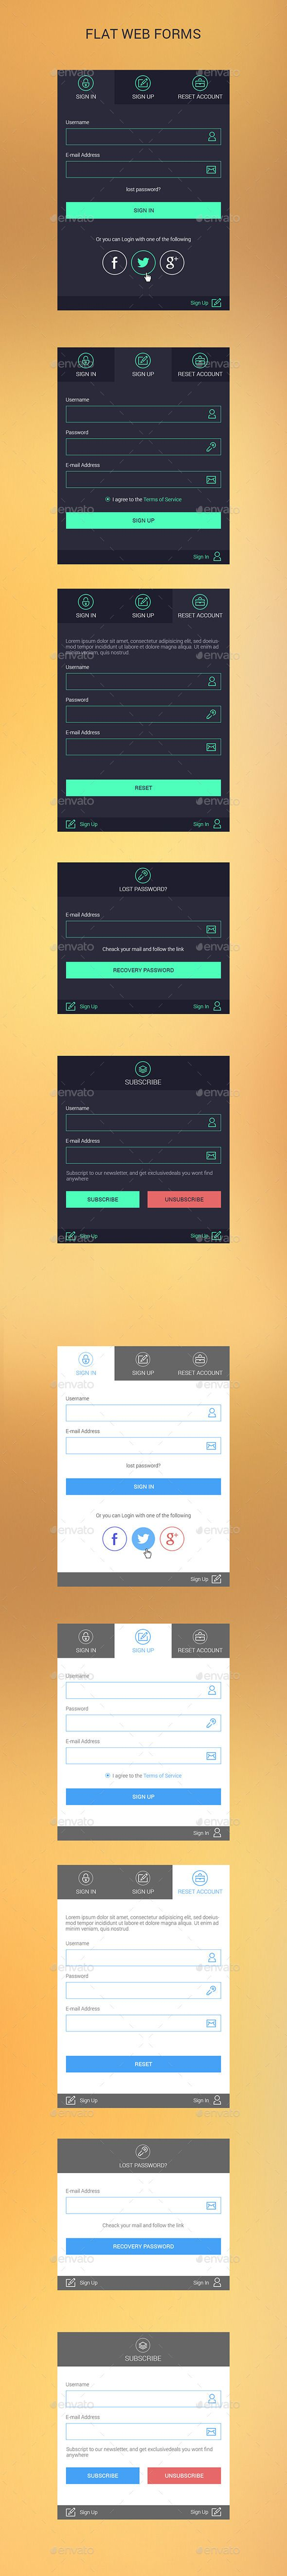 Flat Web Forms #design Download: http://graphicriver.net/item/flat-web-forms/12618461?ref=ksioks